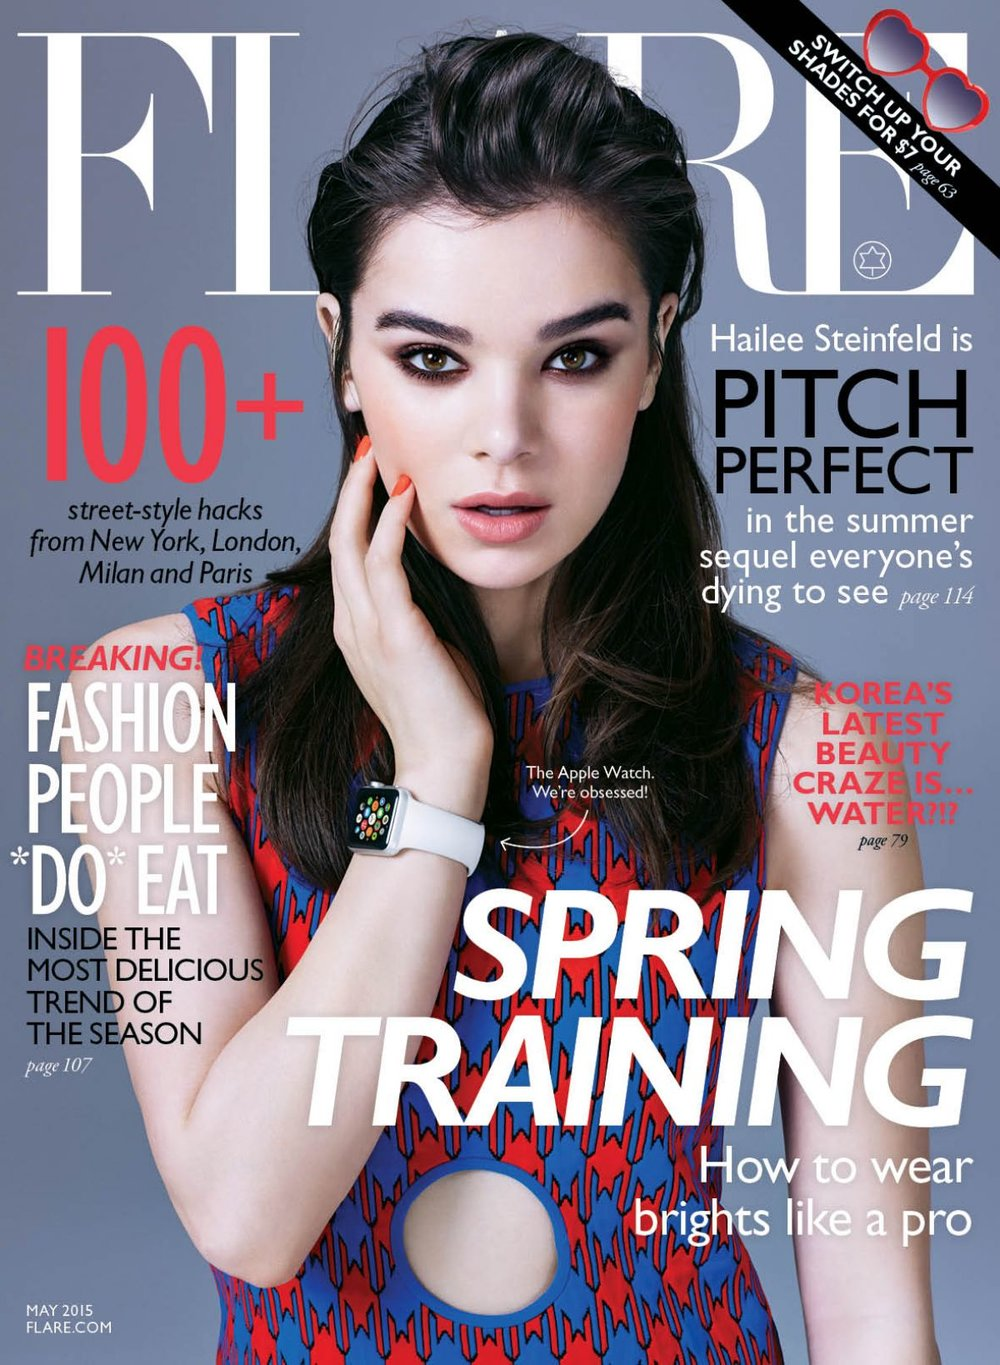 hailee-steinfeld-in-flare-magazine-may-2015-issue_8.jpg